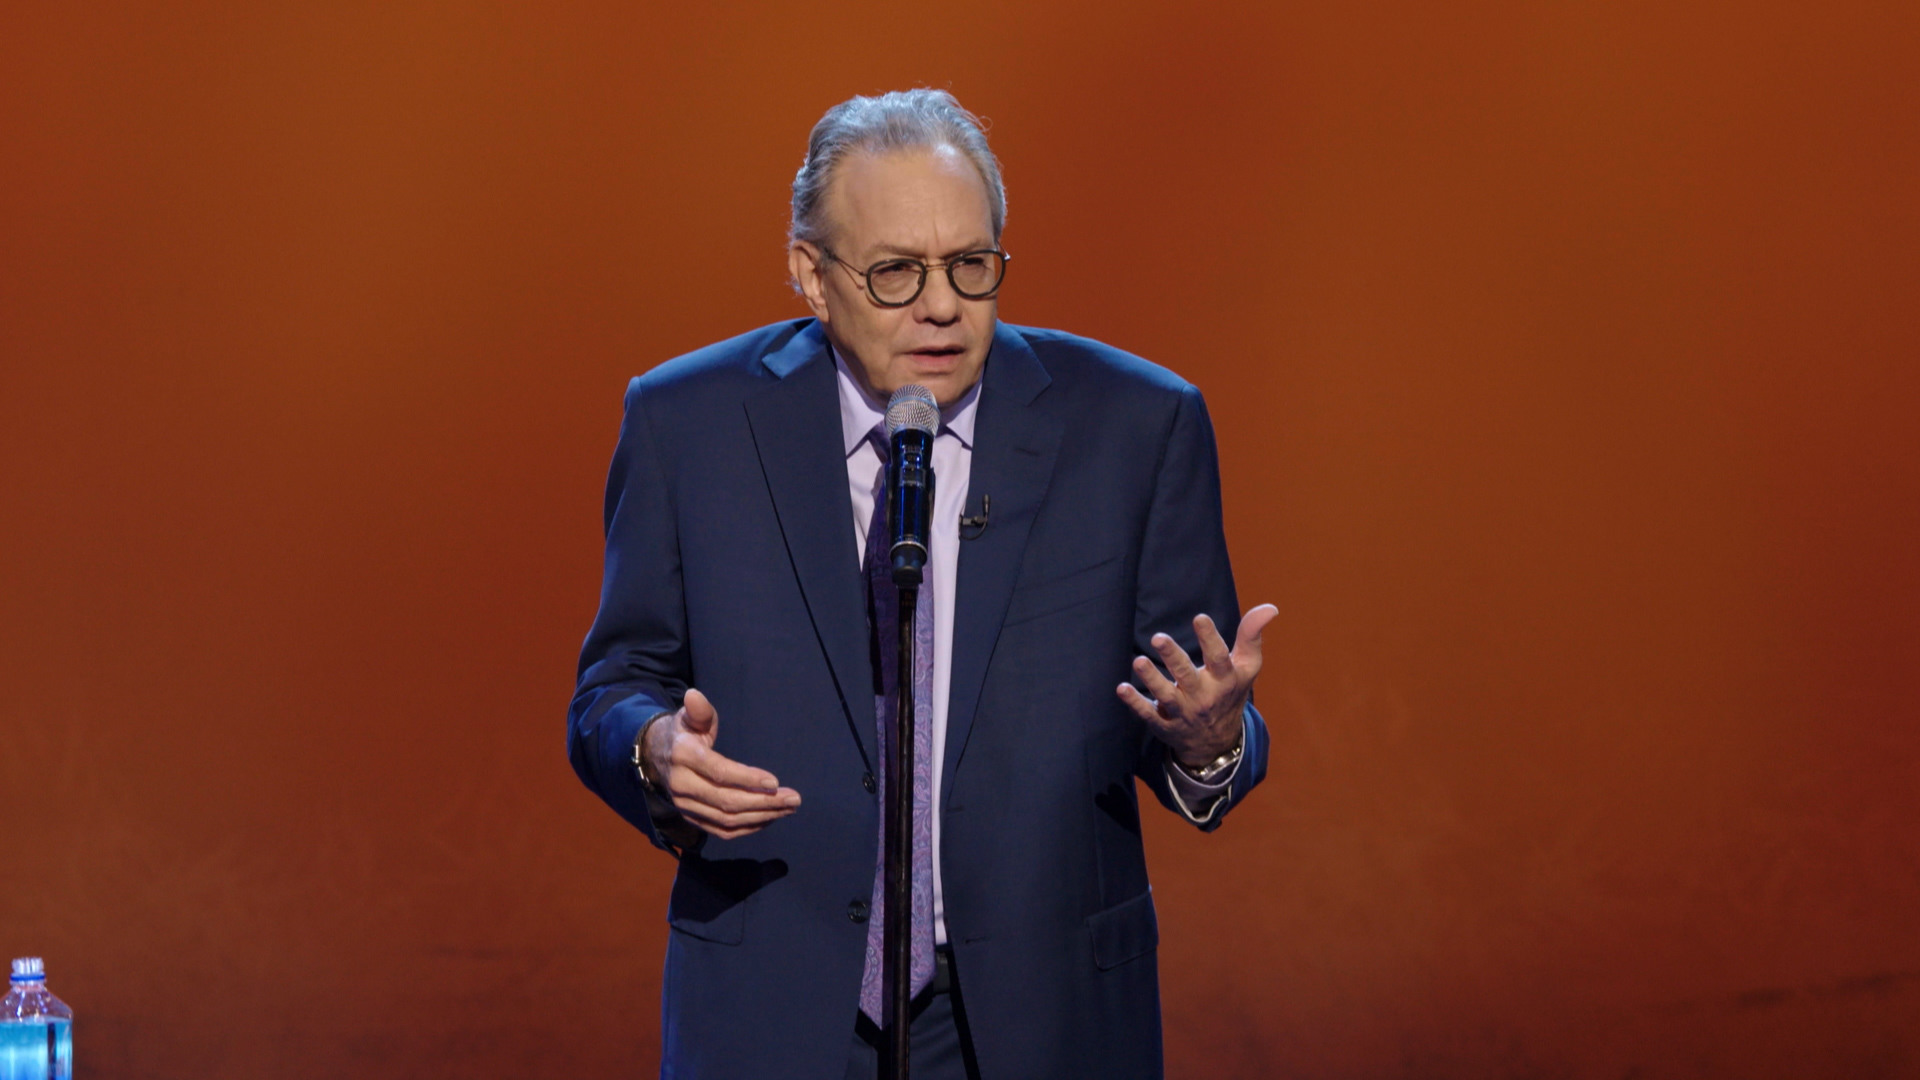 Lewis Black - Learning from Ben Carson